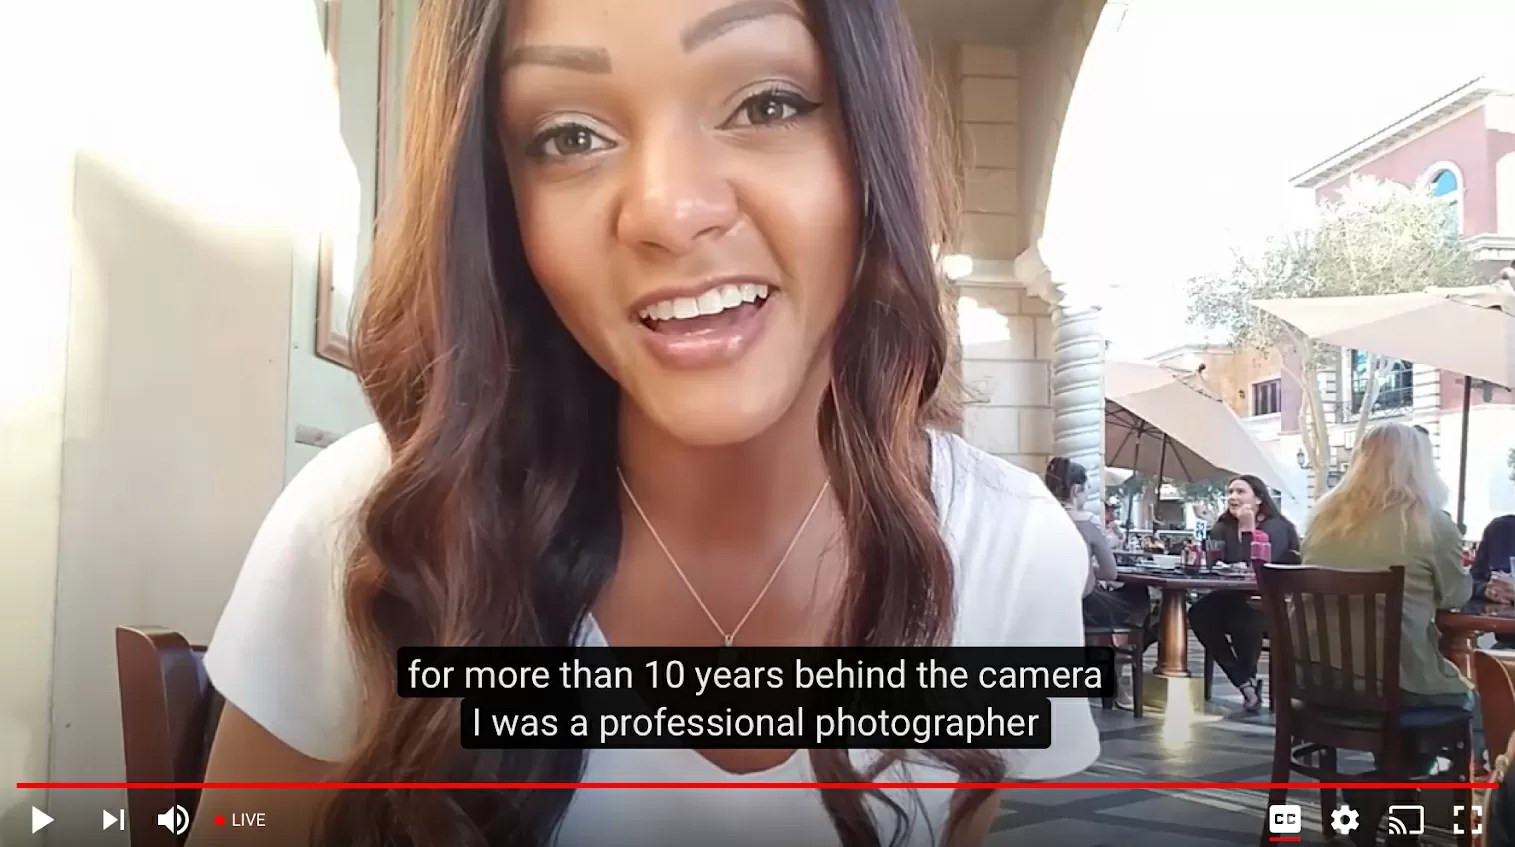 youtube enables automatic captions